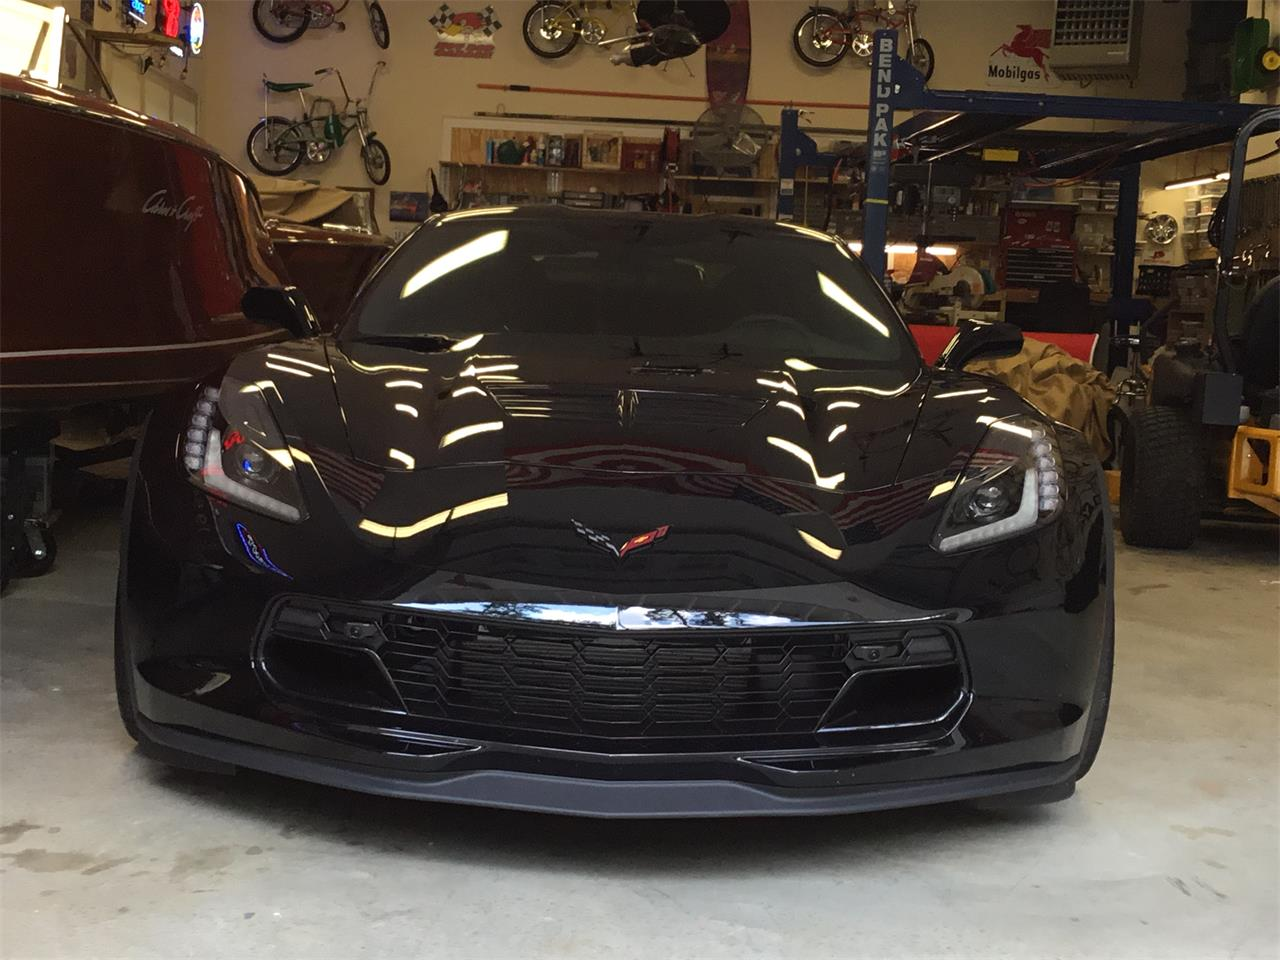 Large Picture of '16 Chevrolet Corvette located in Raleigh North Carolina Offered by a Private Seller - LBG7